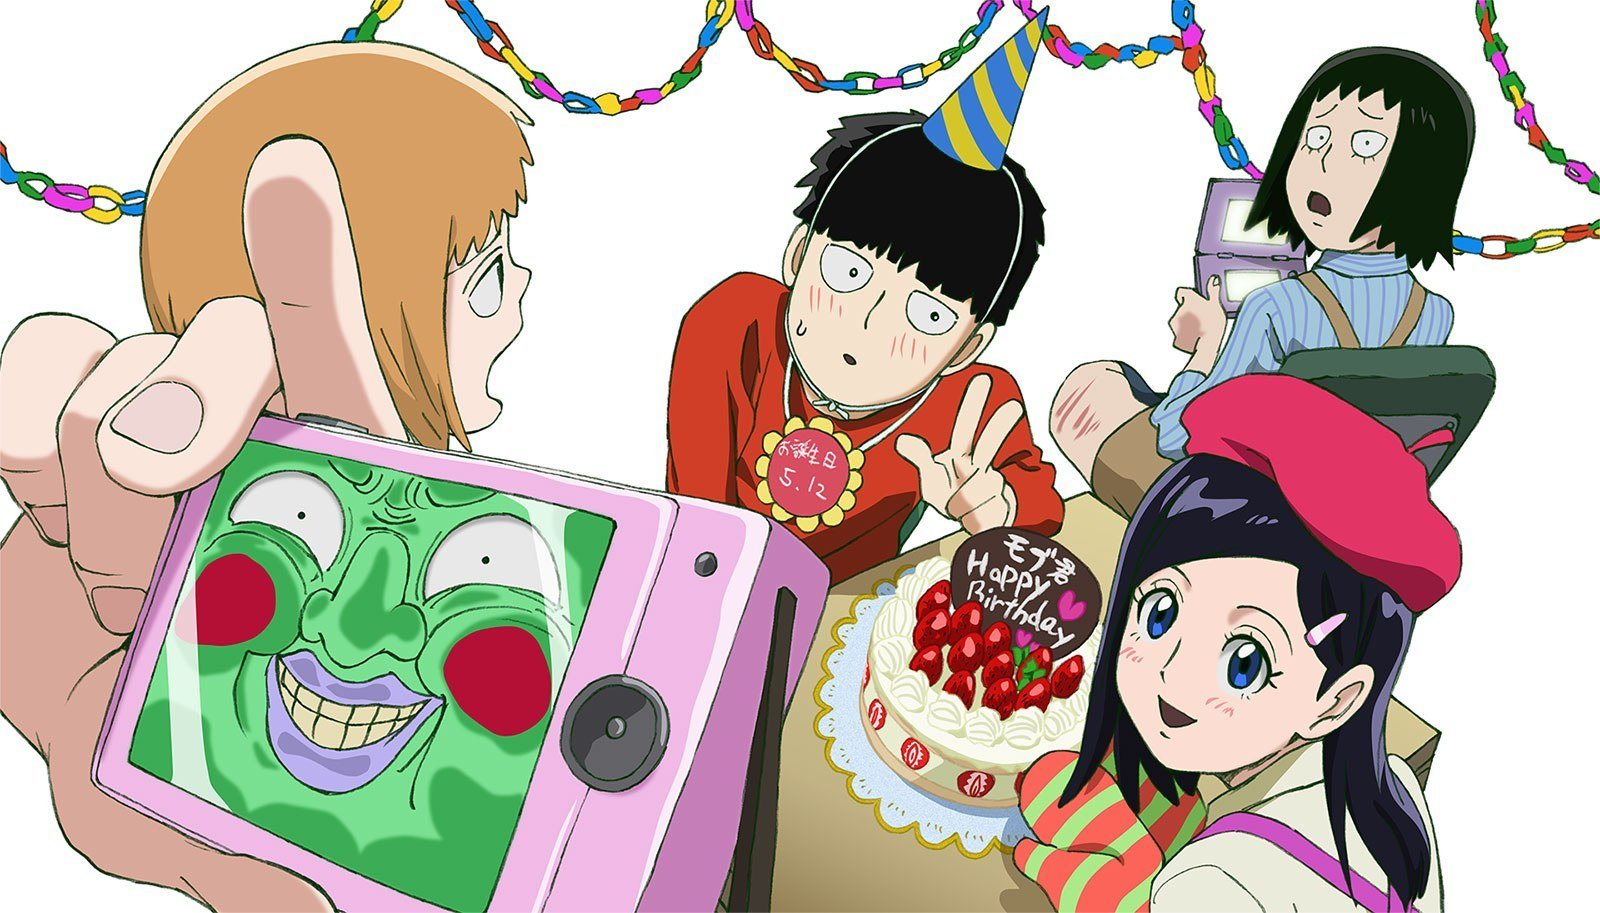 Mob Psycho 100 II Winter 2019 anime